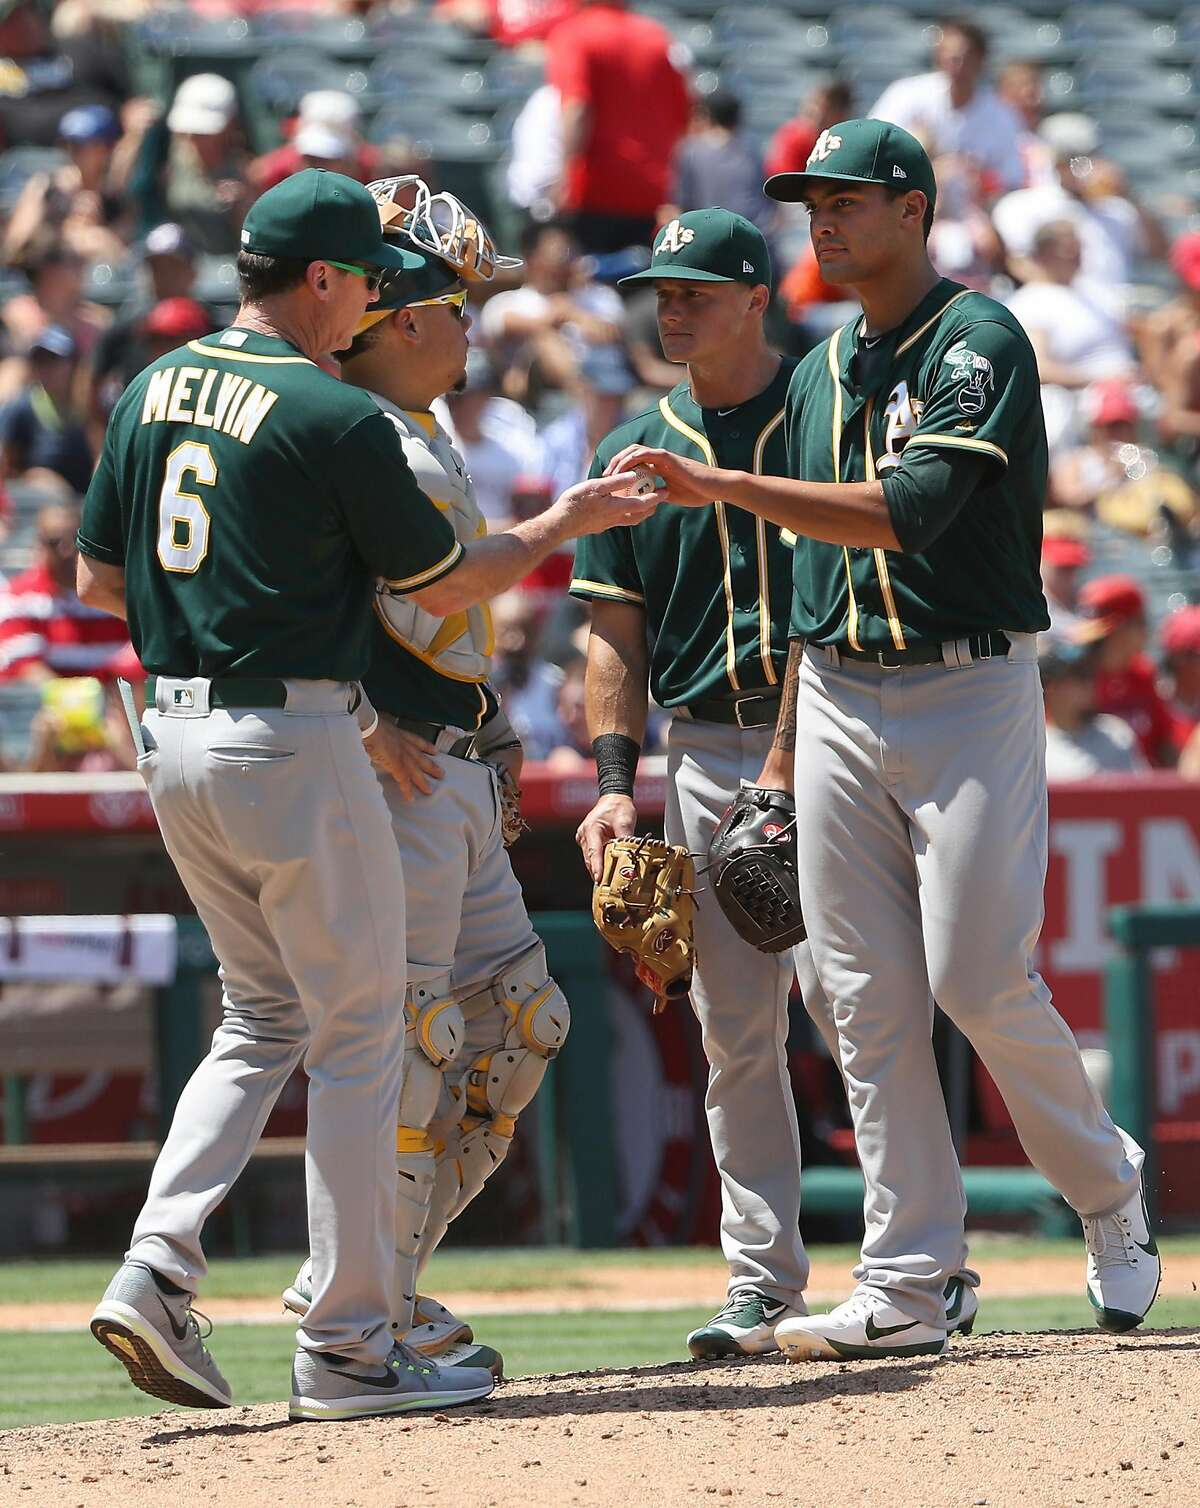 ANAHEIM, CA - AUGUST 06: Manager Bob Melvin #6 of the Oakland Athletics takes out pitcher Sean Manaea #55 of the game in the fourth inning of the MLB game against the Los Angeles Angels of Anaheim at Angel Stadium of Anaheim on August 6, 2017 in Anaheim, California. (Photo by Victor Decolongon/Getty Images)